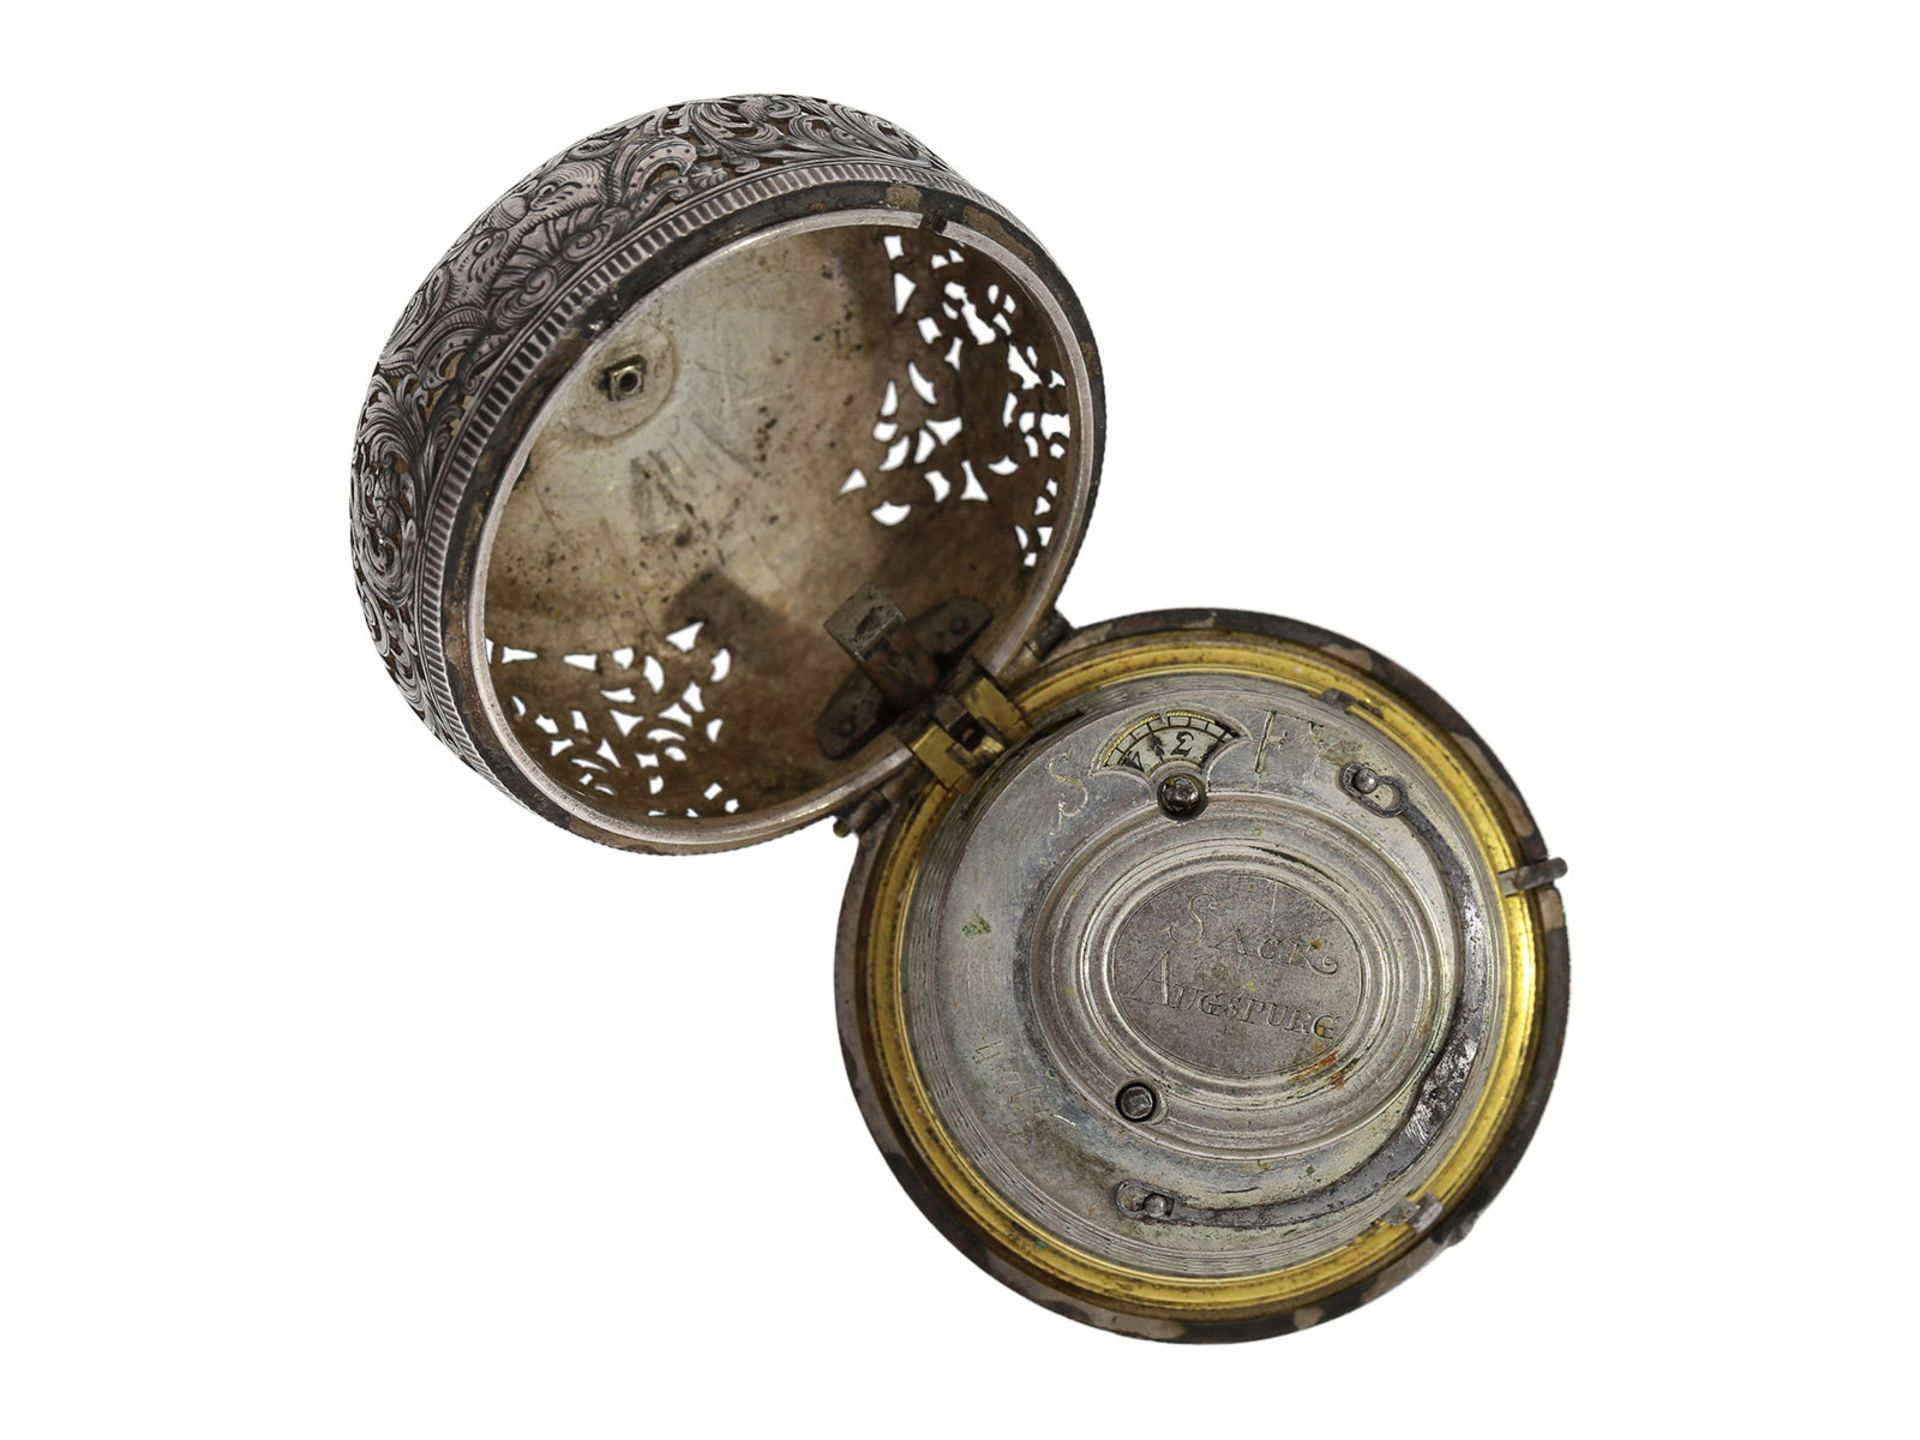 Pocket watch: Augsburg pair case repousse verge watch with relief case in exceptional quality and - Bild 5 aus 14